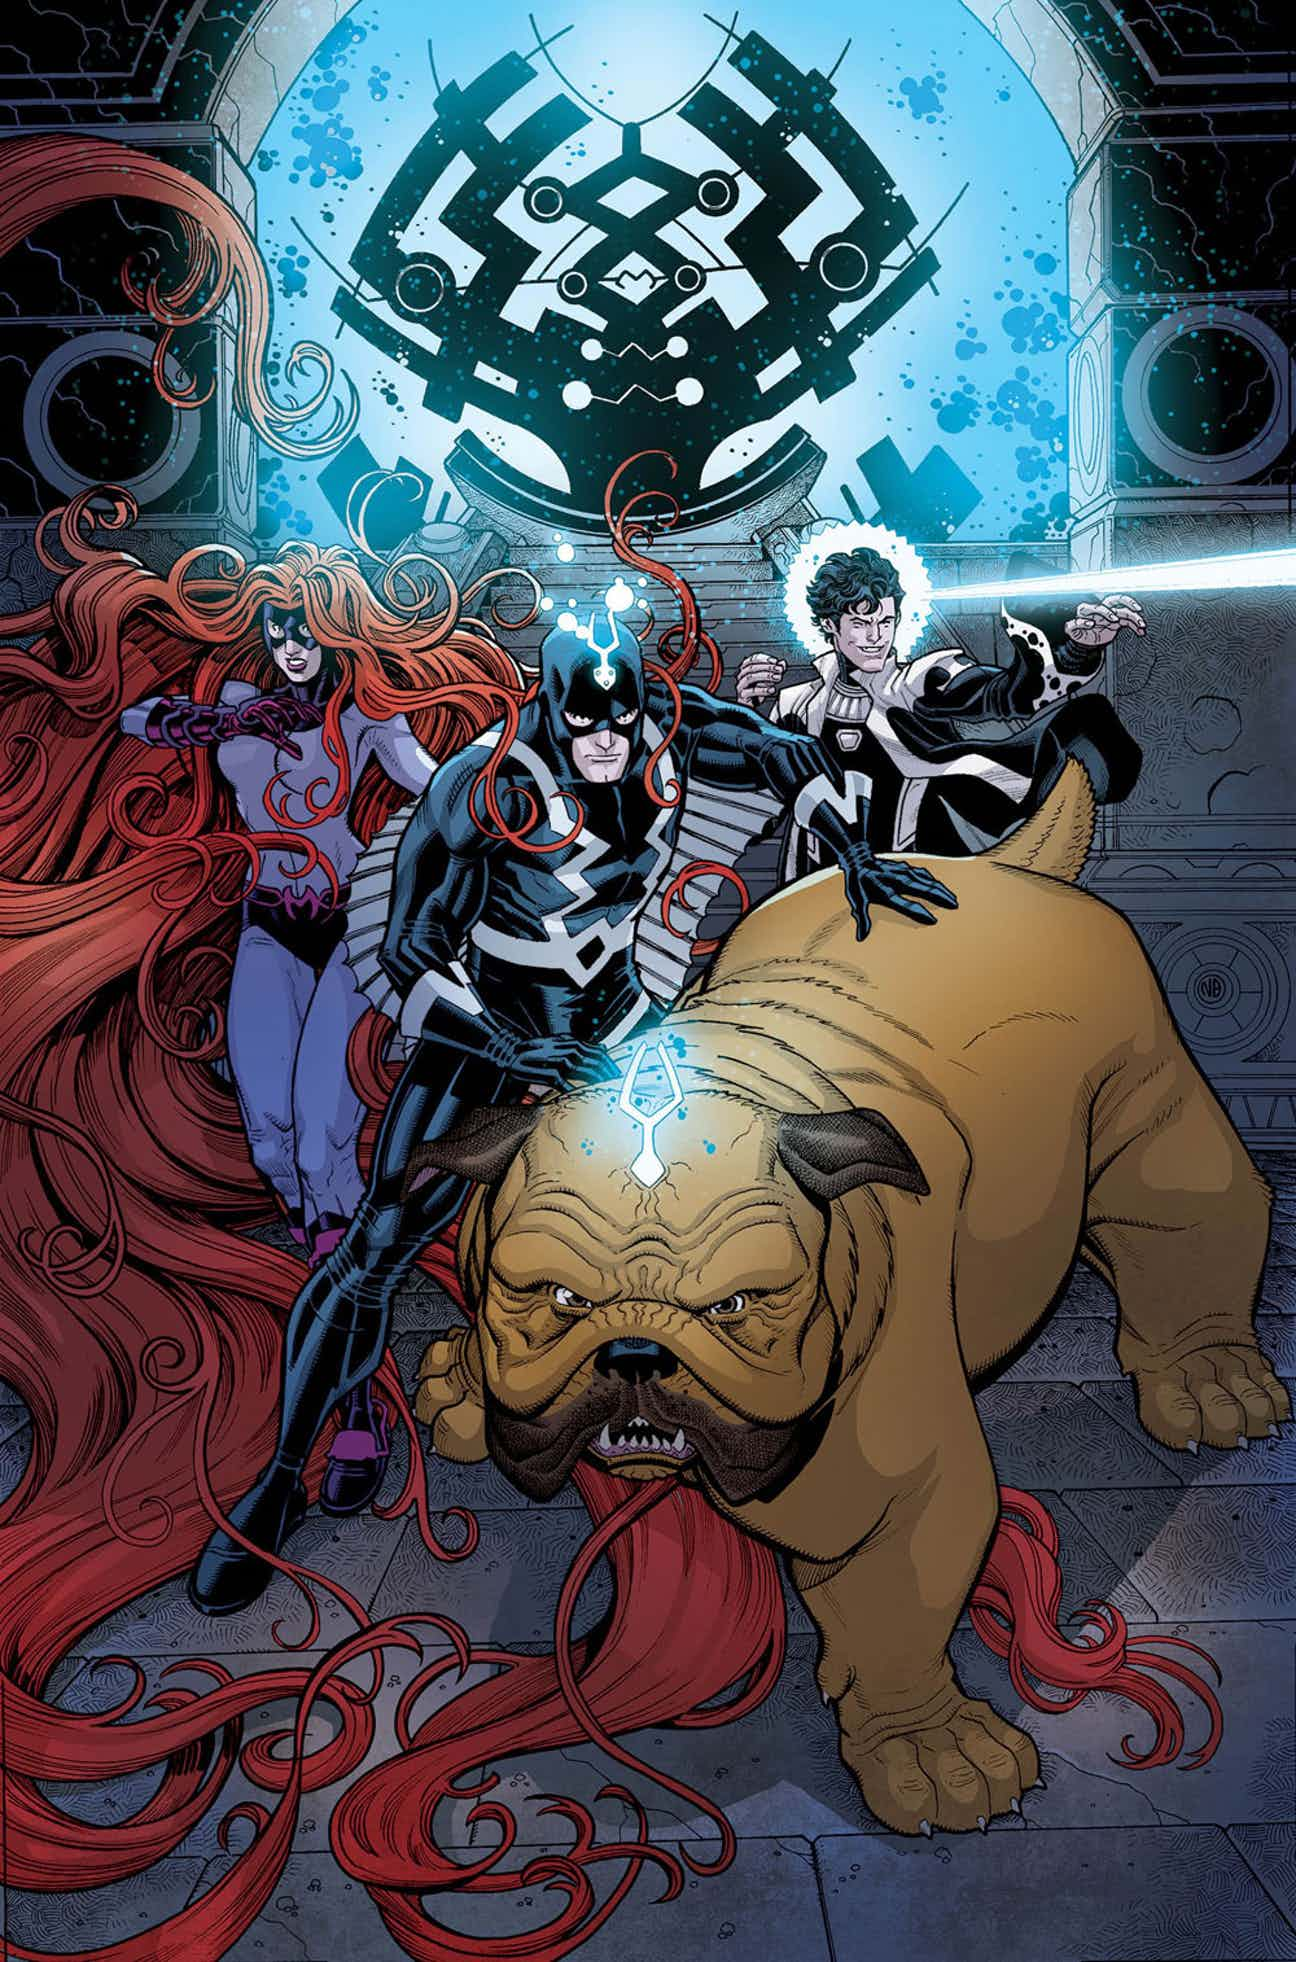 'Inhumans: Once and Future Kings' #1, out now from Marvel Comics